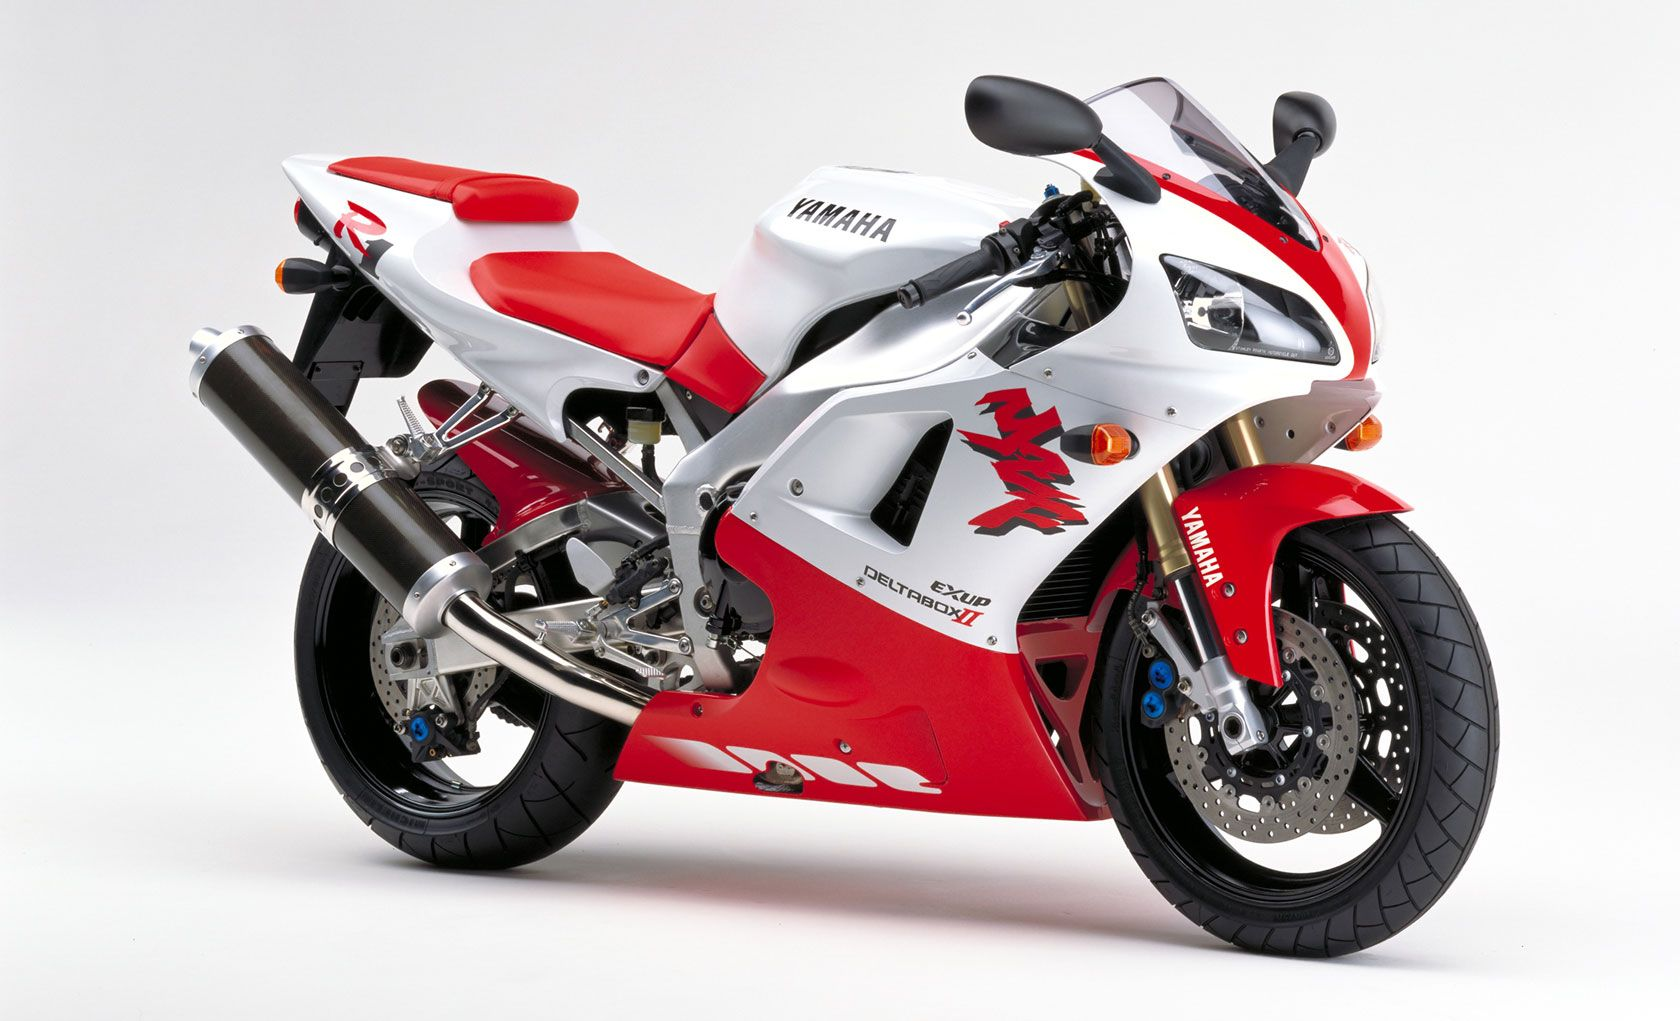 Yamaha YZF-R1 1998-1999 - Specifications - Wings and Gears | Bikes